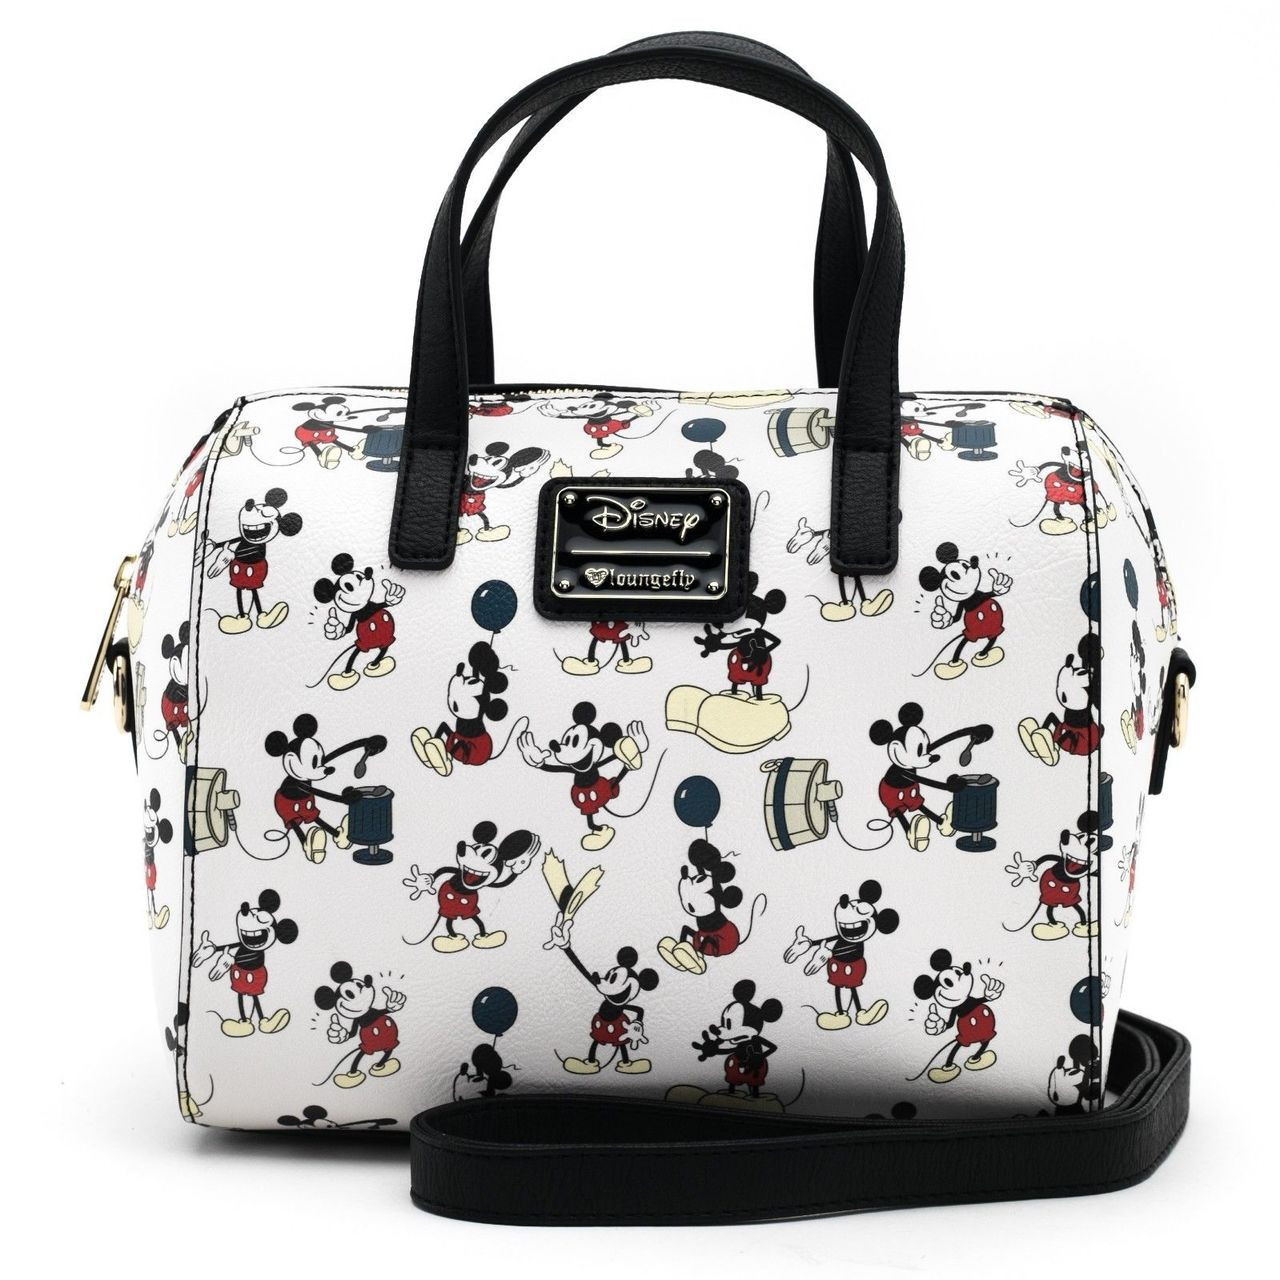 Loungefly Disney Mickey Mouse Poses Faux Leather Duffel Tote Bag Purse  WDTB1415 54b7211bc7530